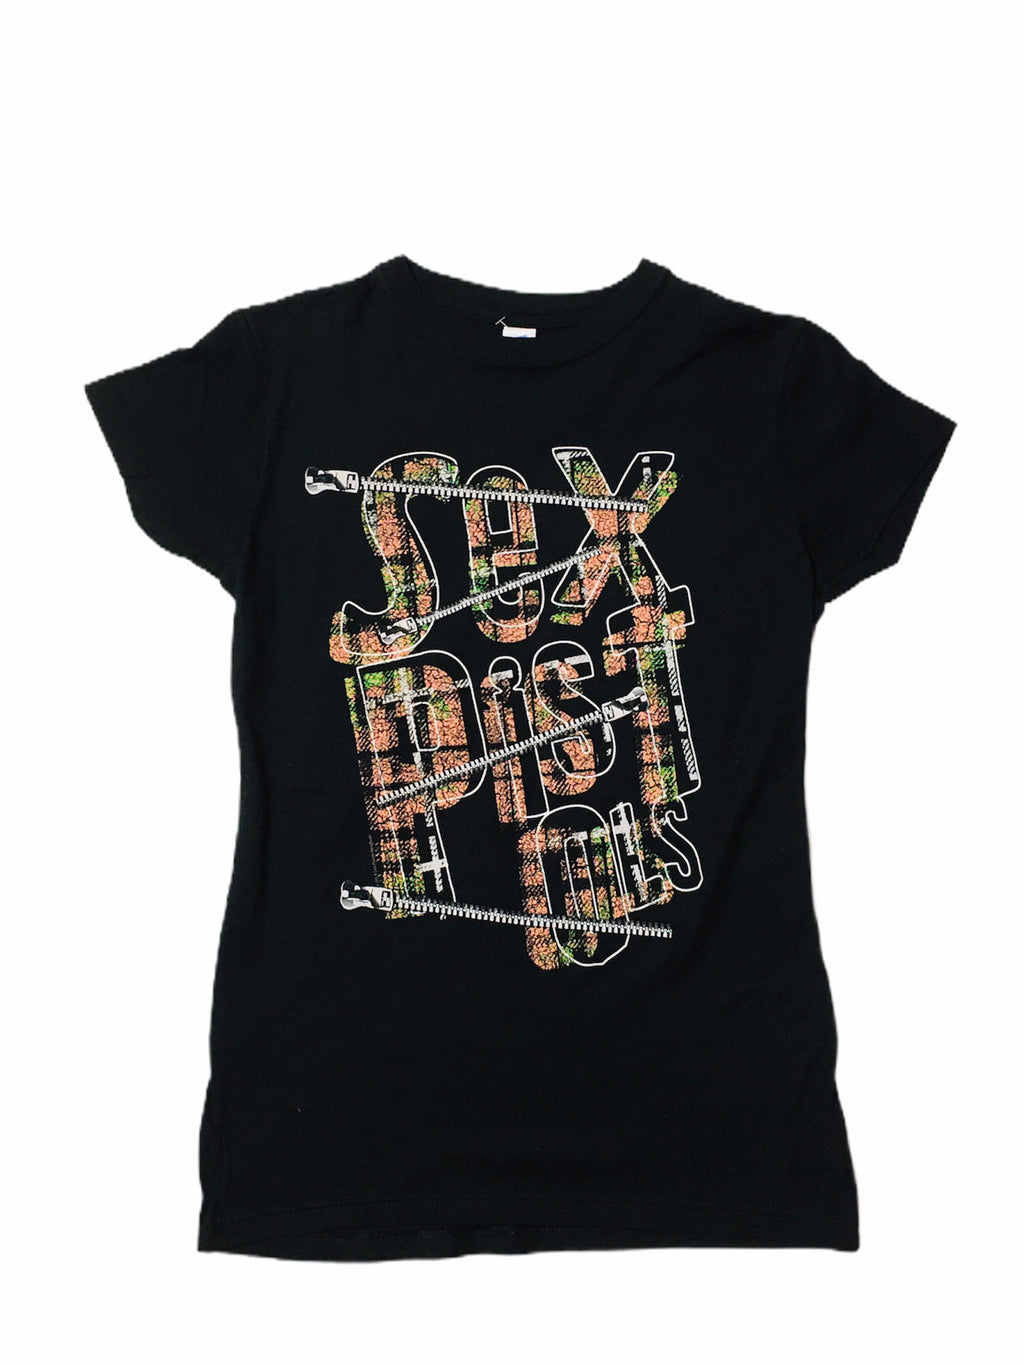 Sex Pistols Plaid & Zipper Logo Print Junior's Tee